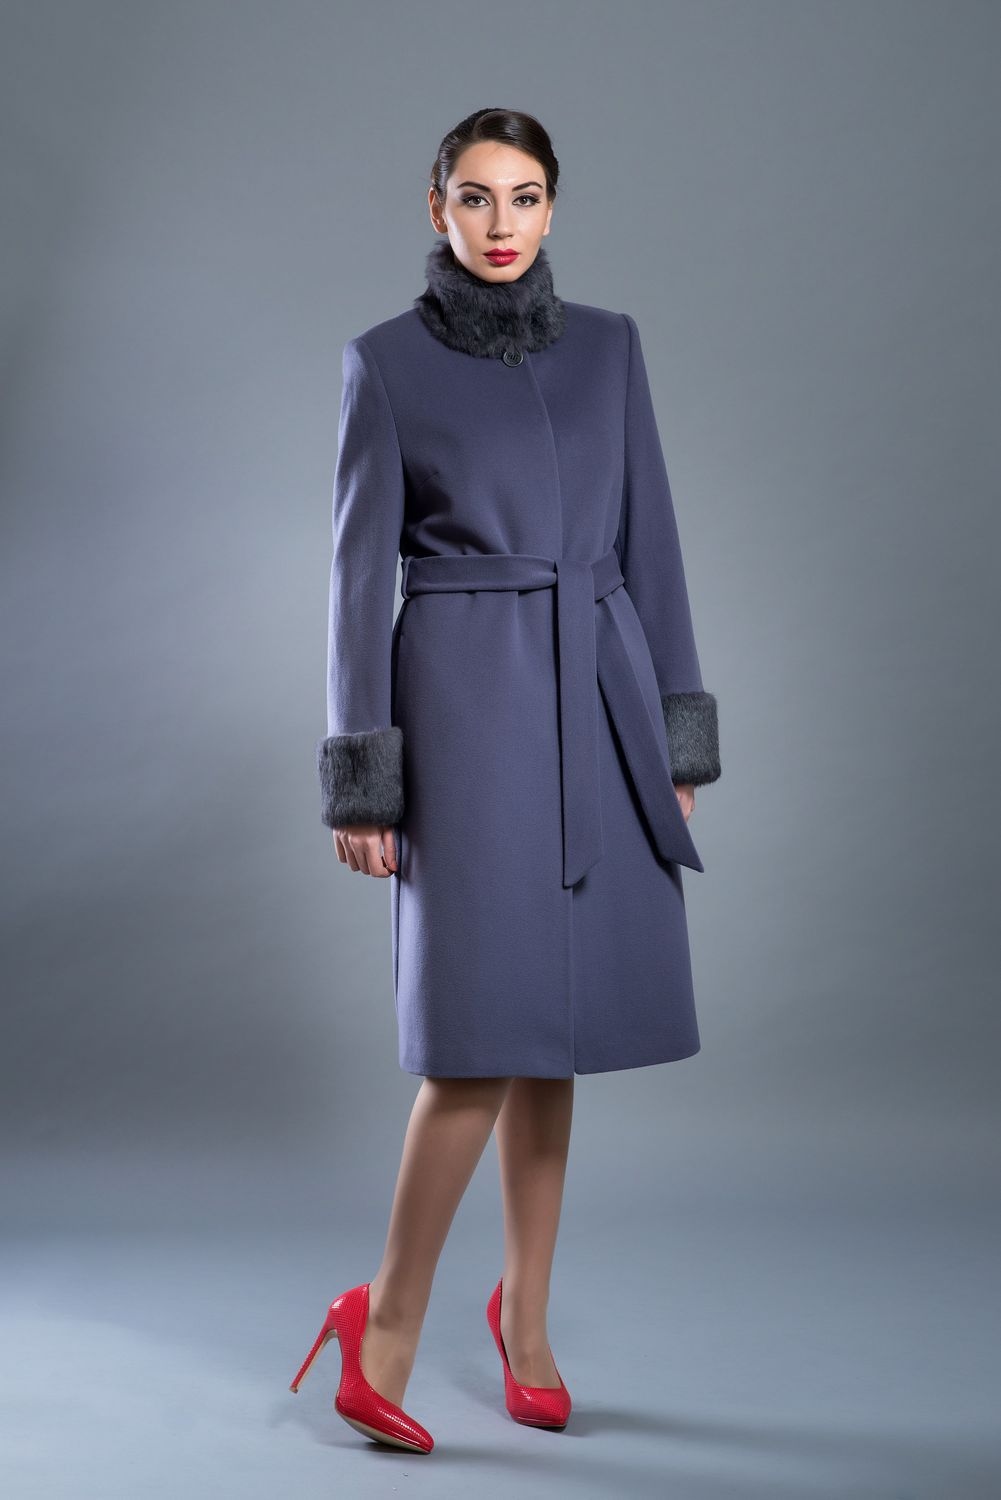 Belted wool coat with fur collar and cuffs